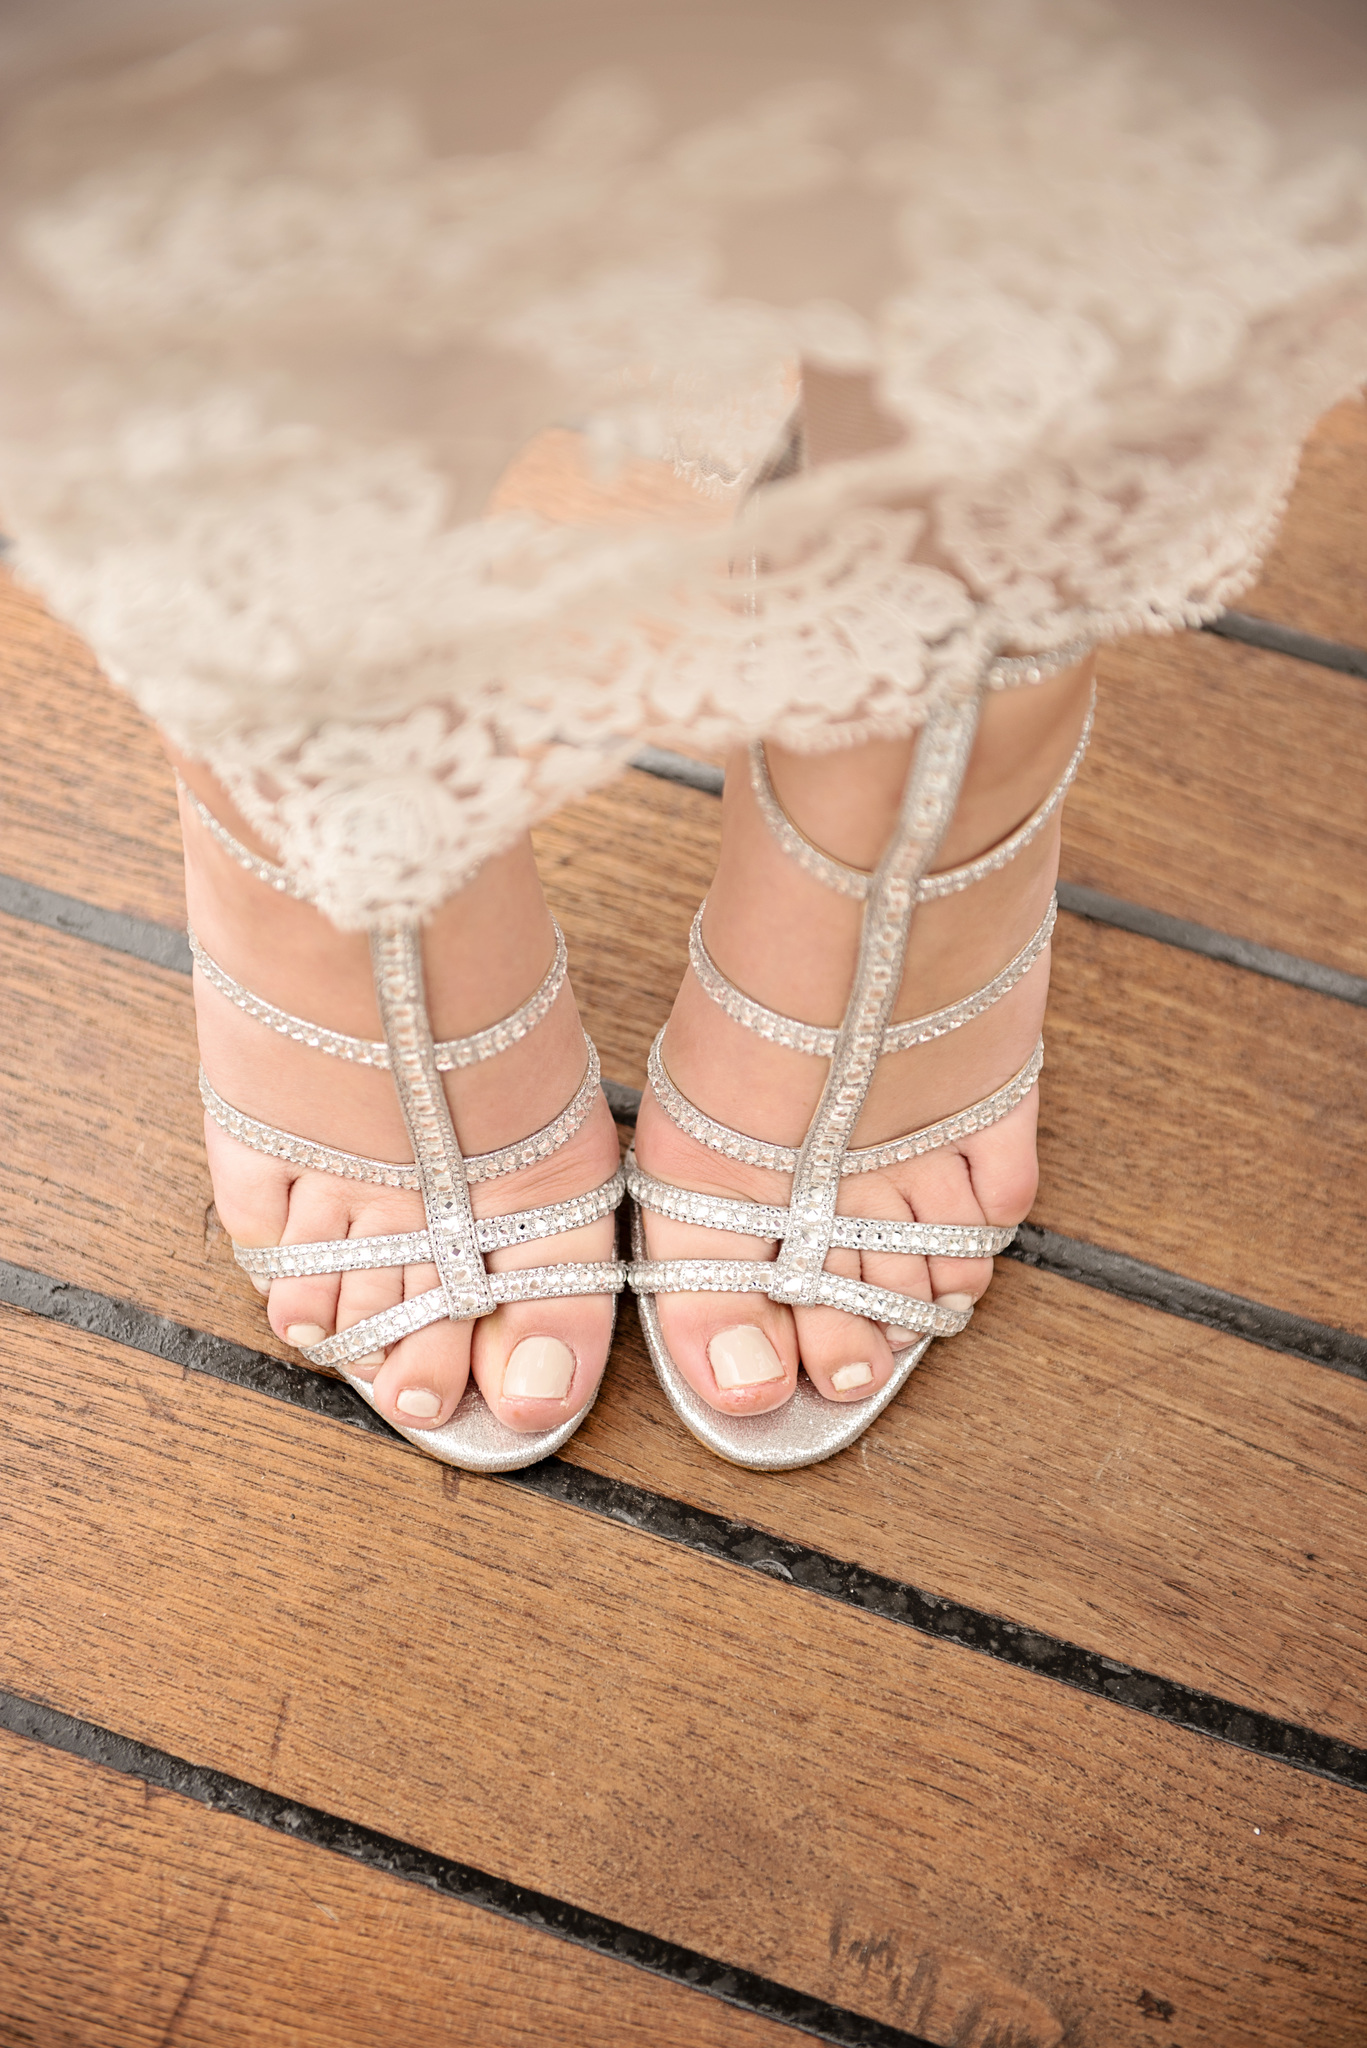 Gorgeous bride shoes